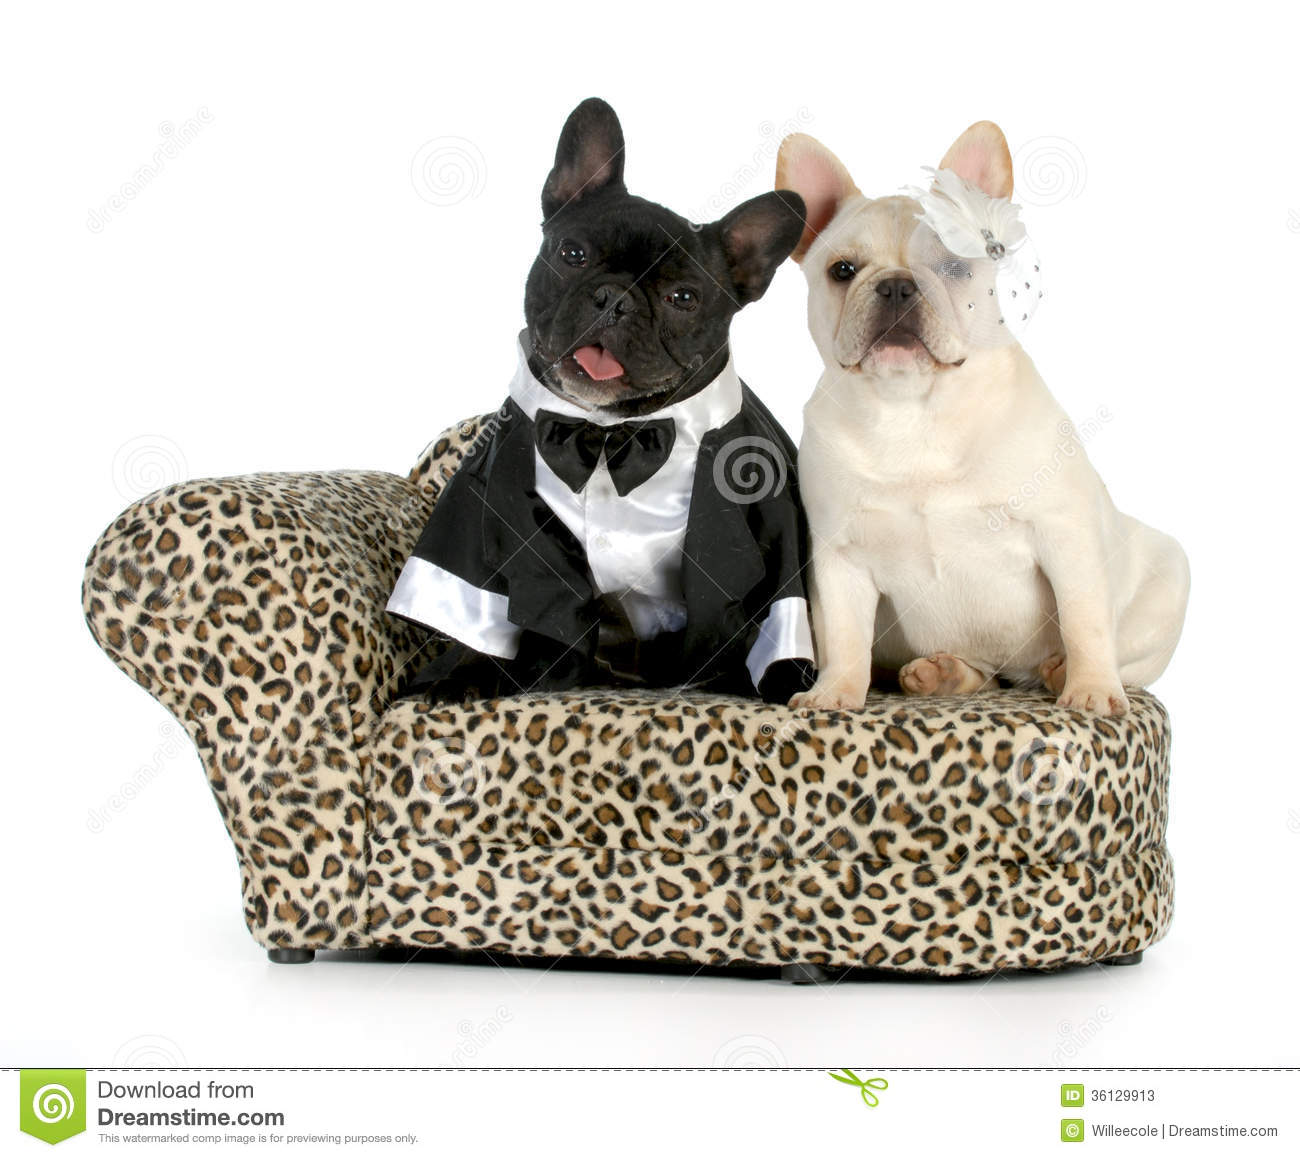 french bulldog dressed up dog couple stock image image of costume brindle pose 3433